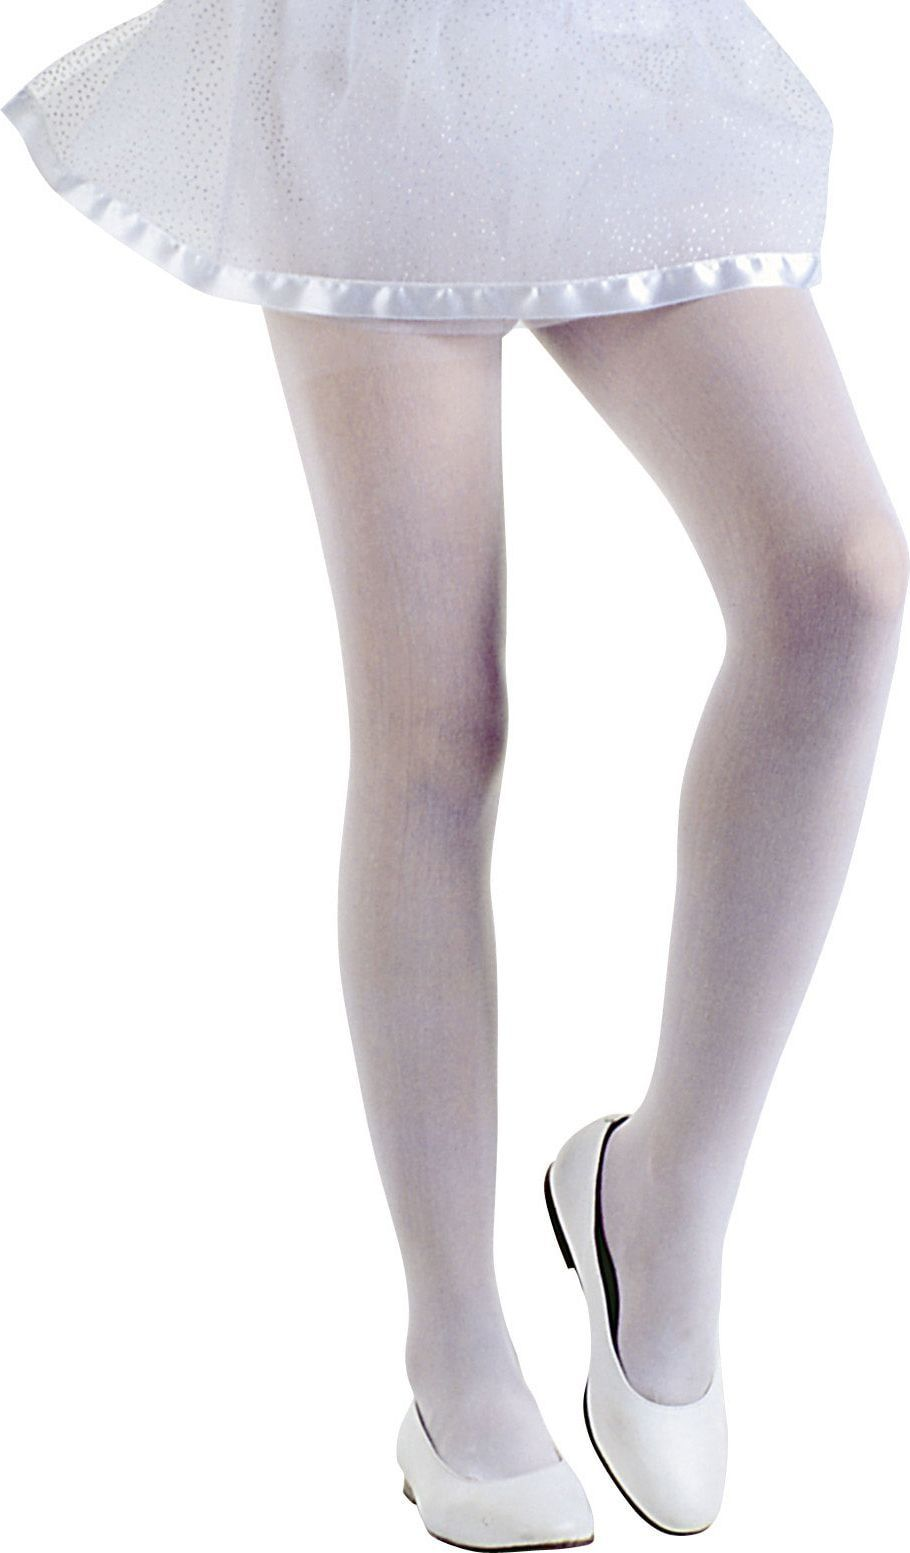 Witte glamour kinderpanty